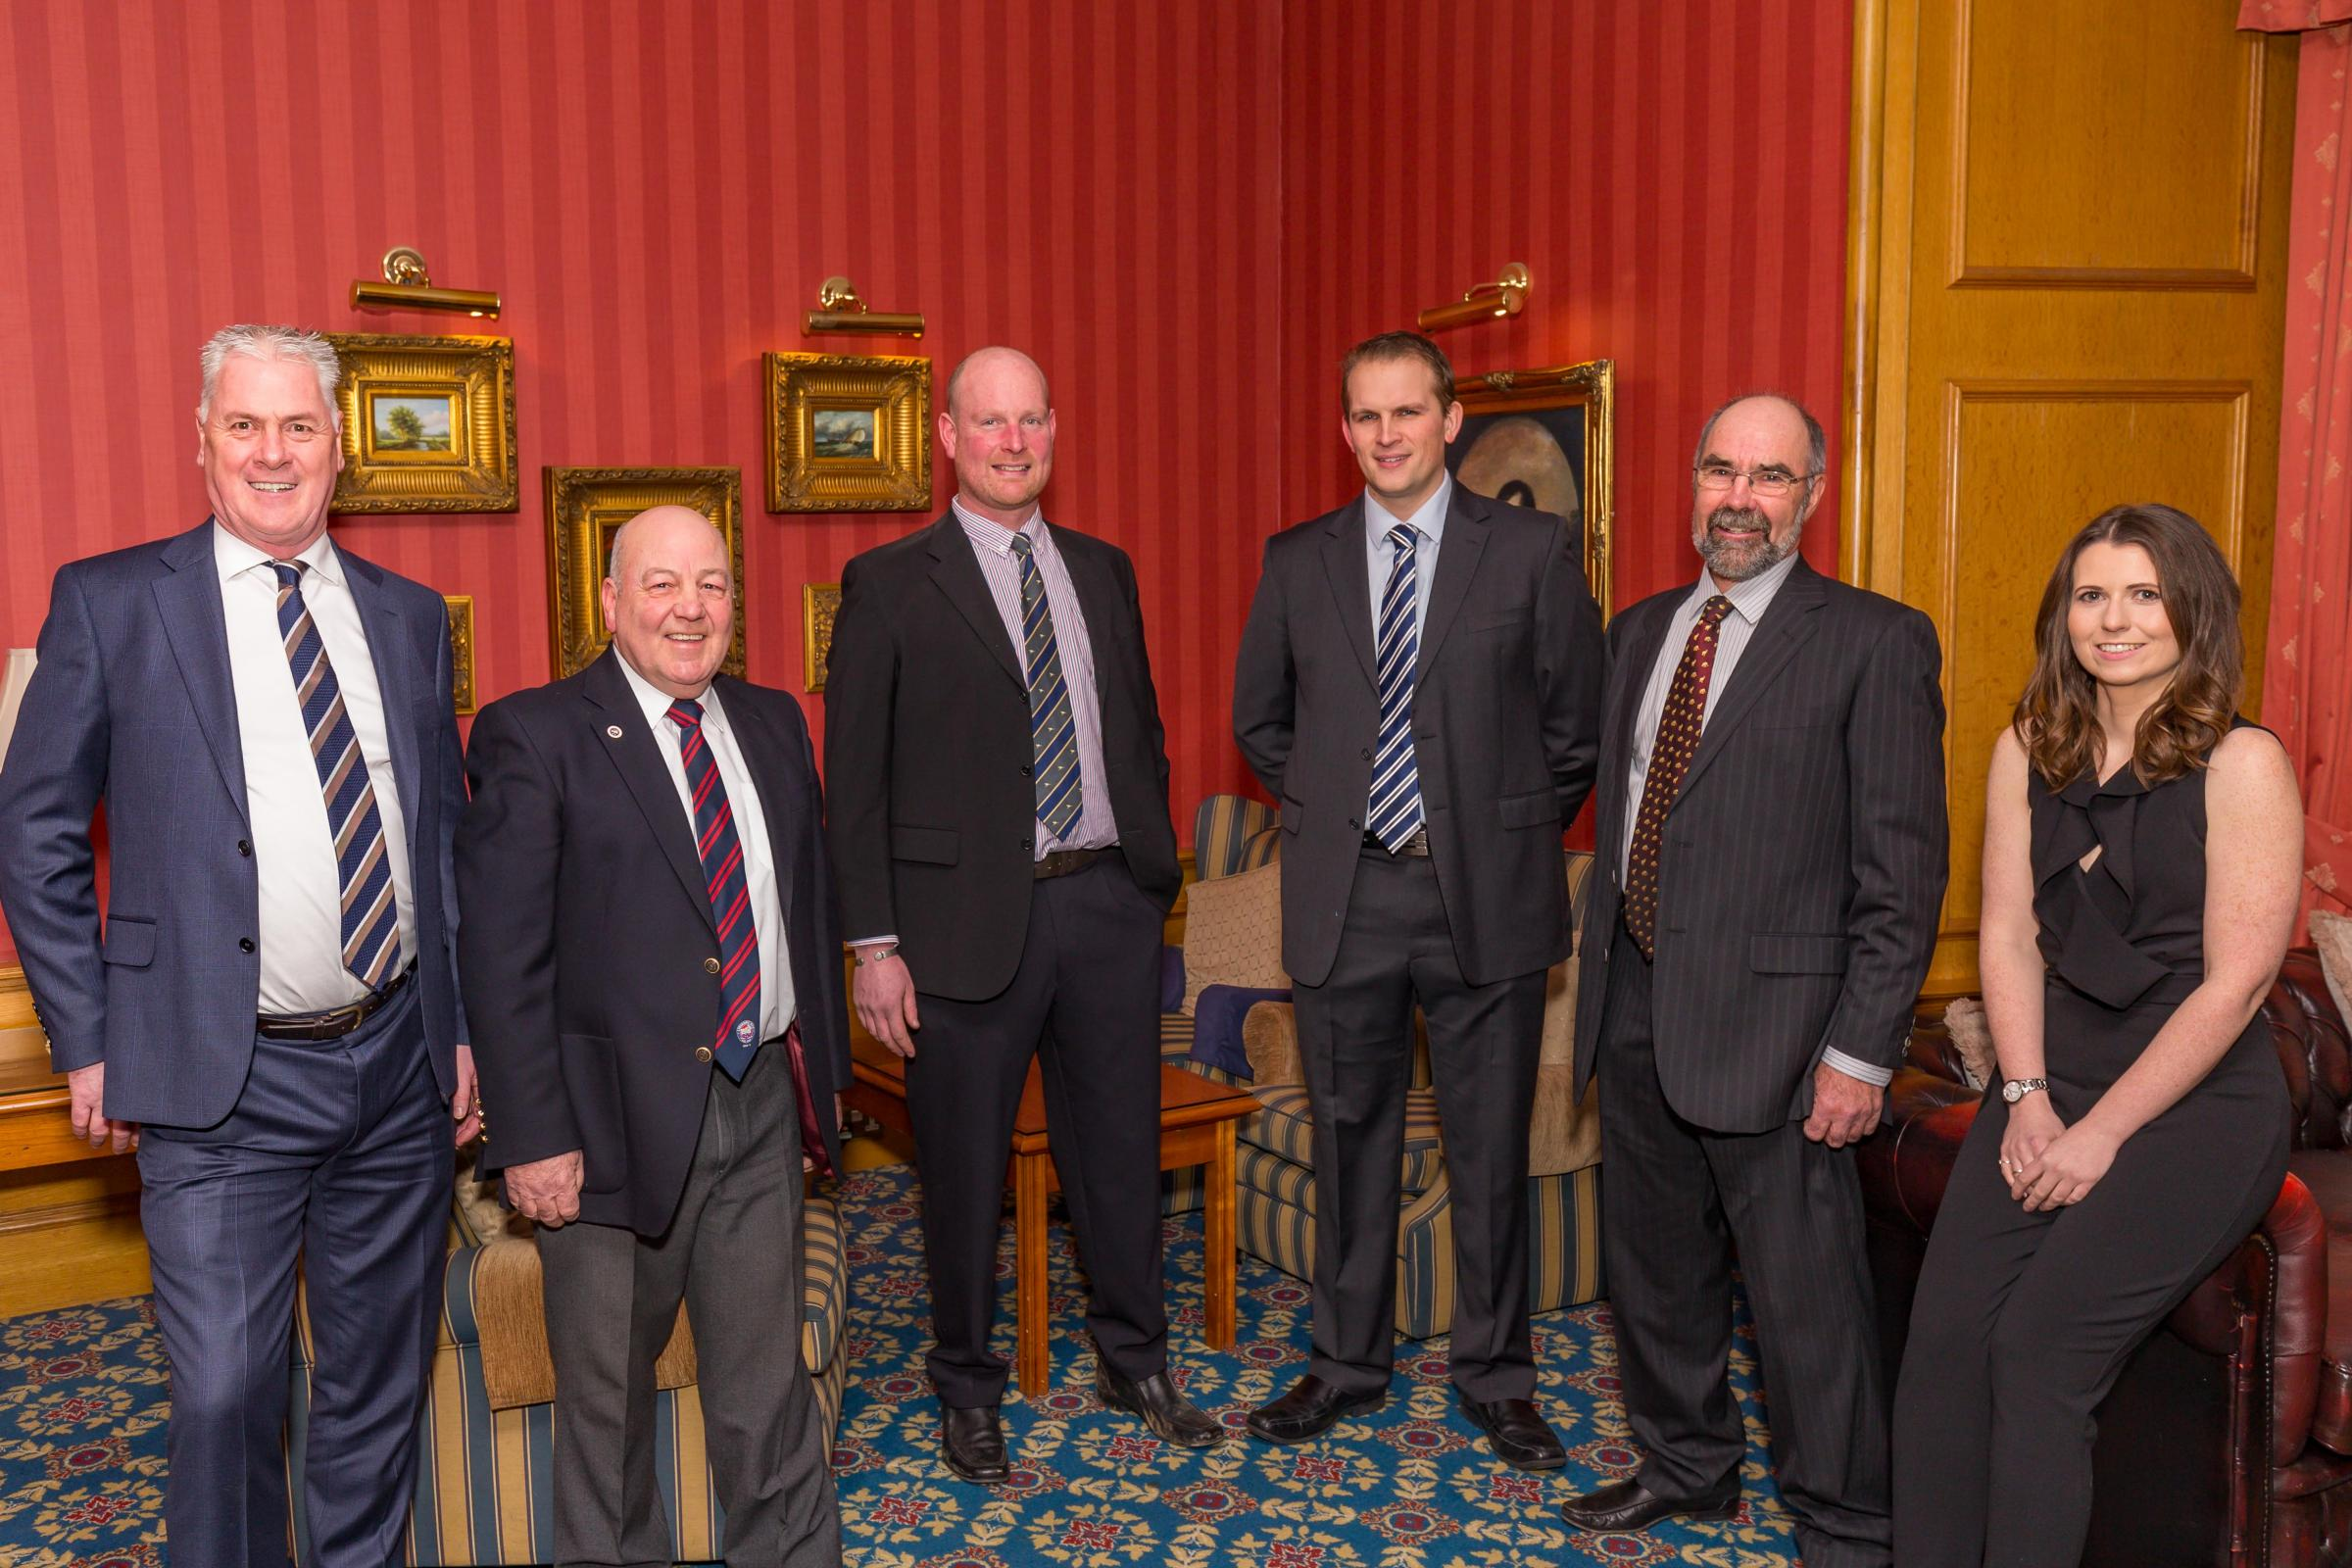 The East Lothian branch of NFU Scotland toasted another busy year at their annual dinner in Haddington